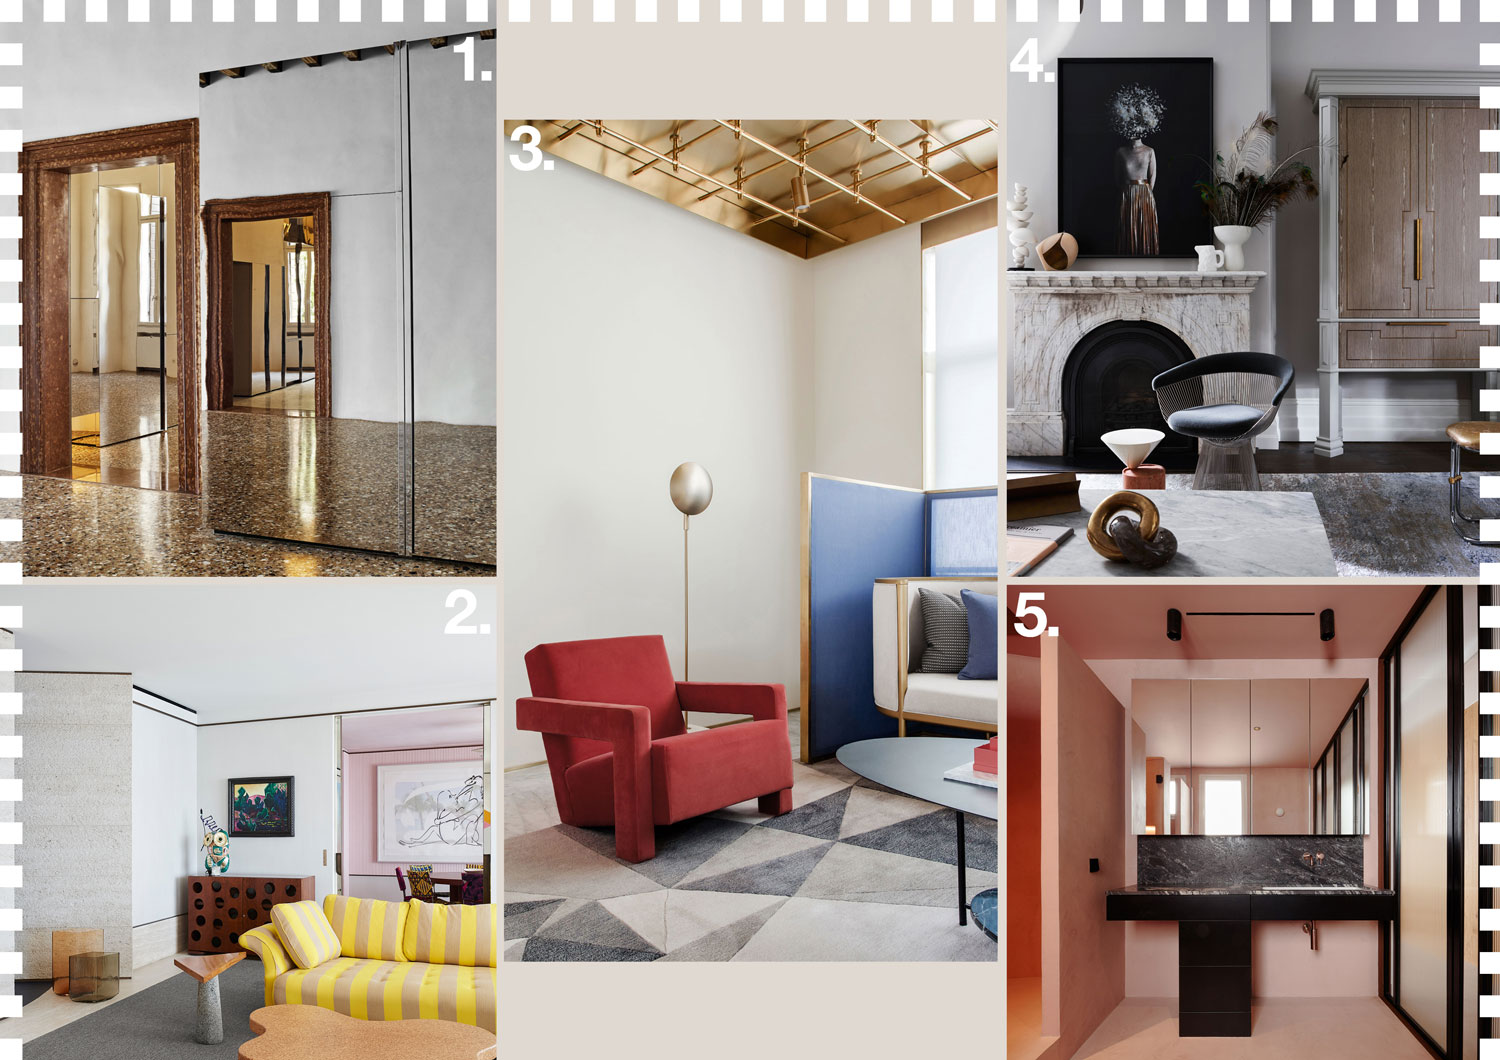 Residential Interiors 2019 Archive | Yellowtrace